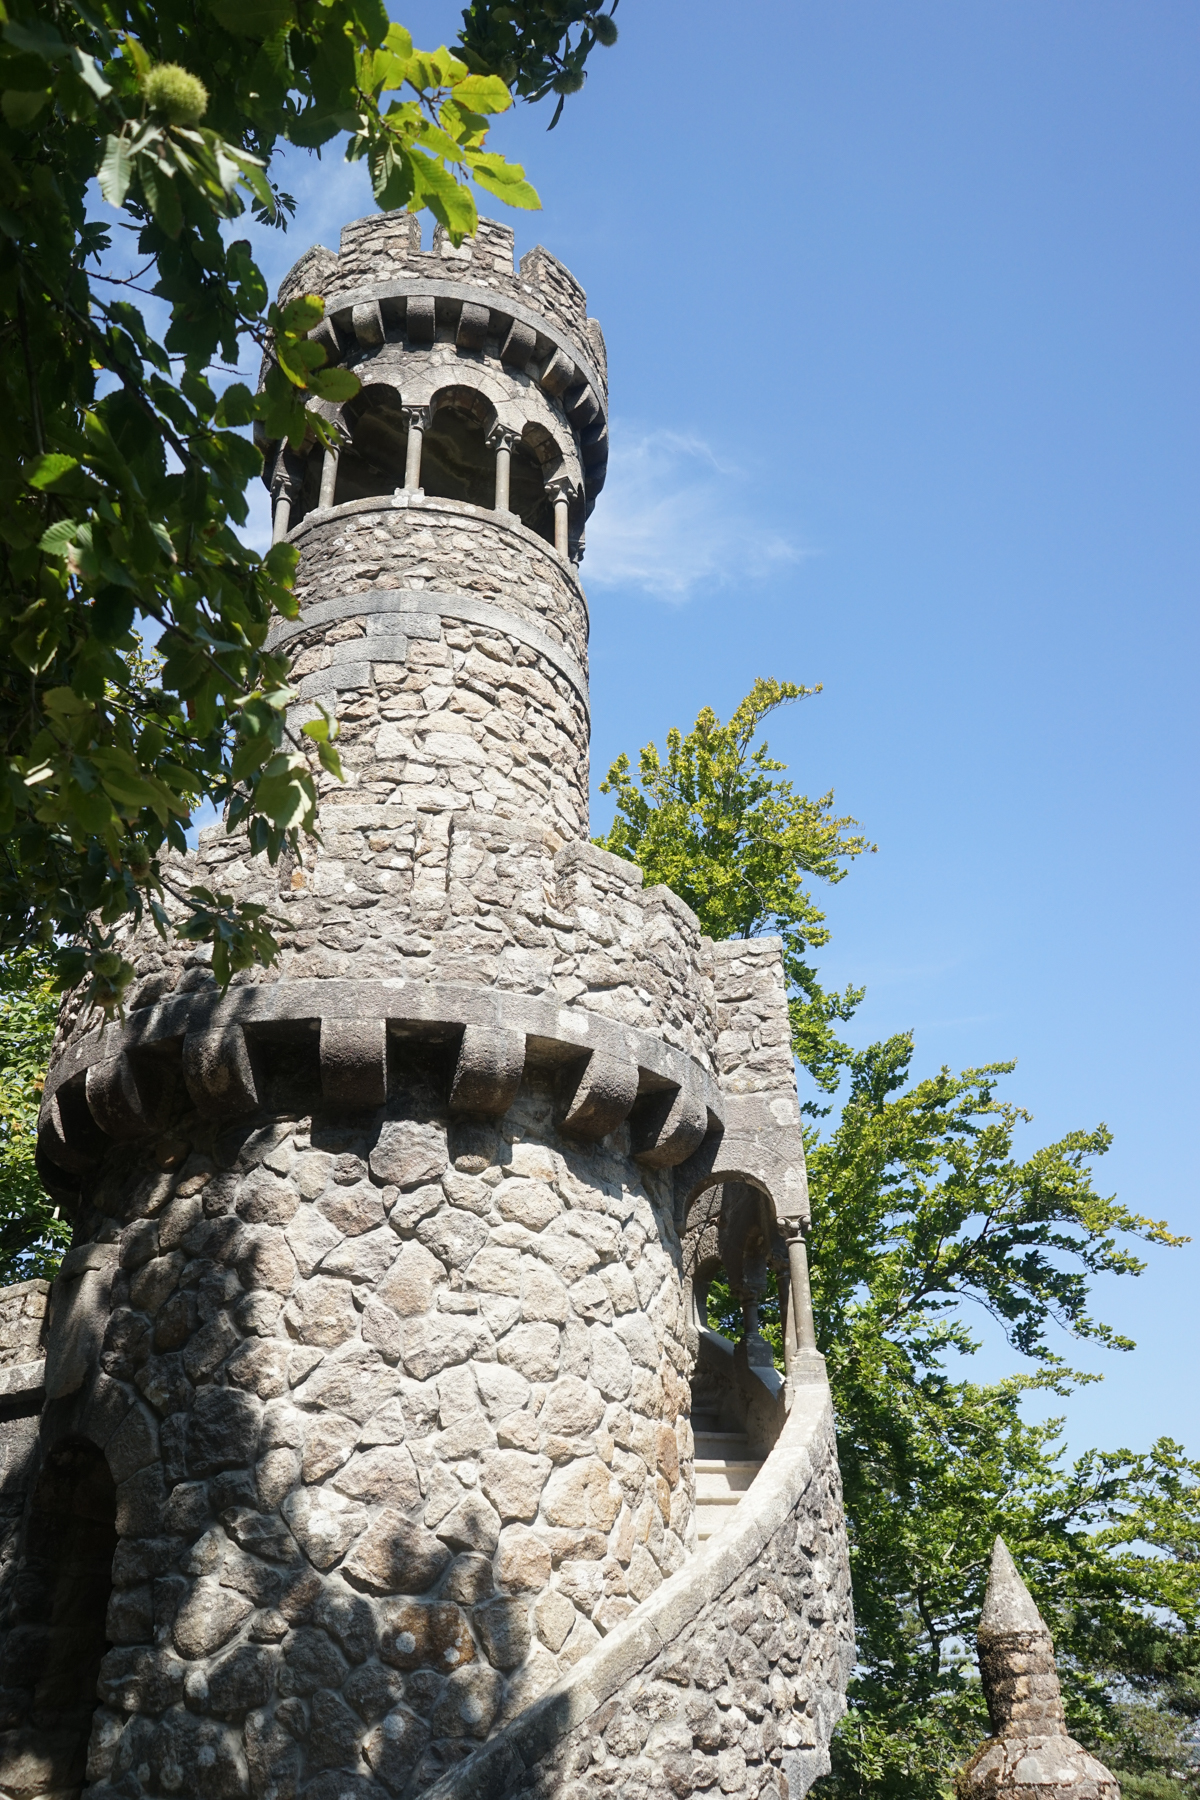 One of the castles at Quinta de Regaleira